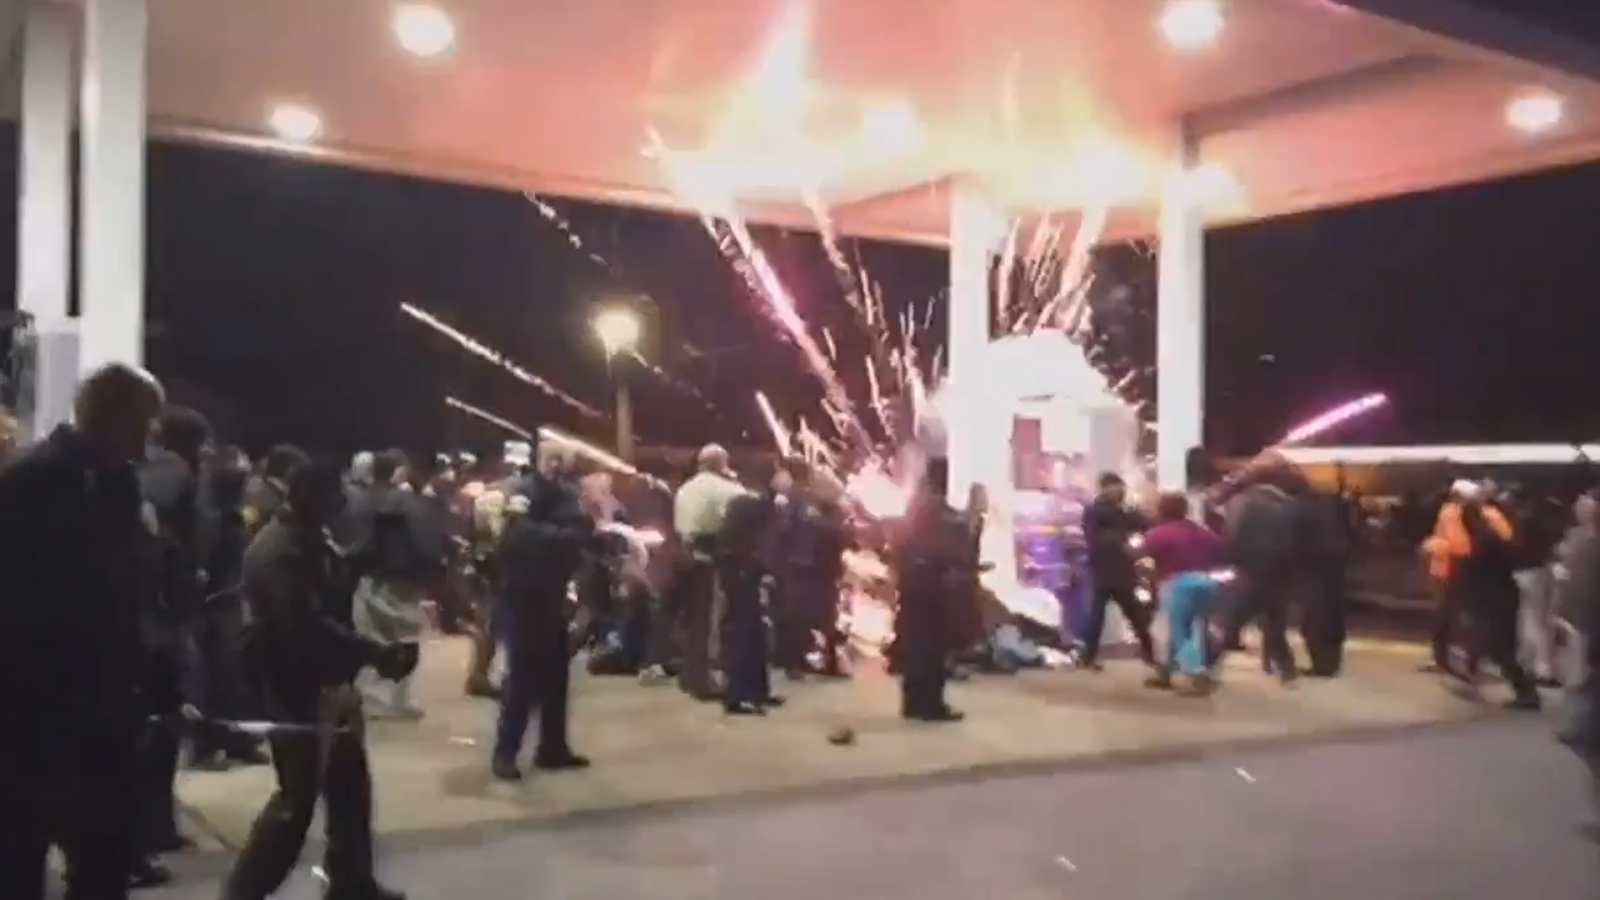 Antonio Martin: Clashes between protesters and police after black US teenager shot by officer